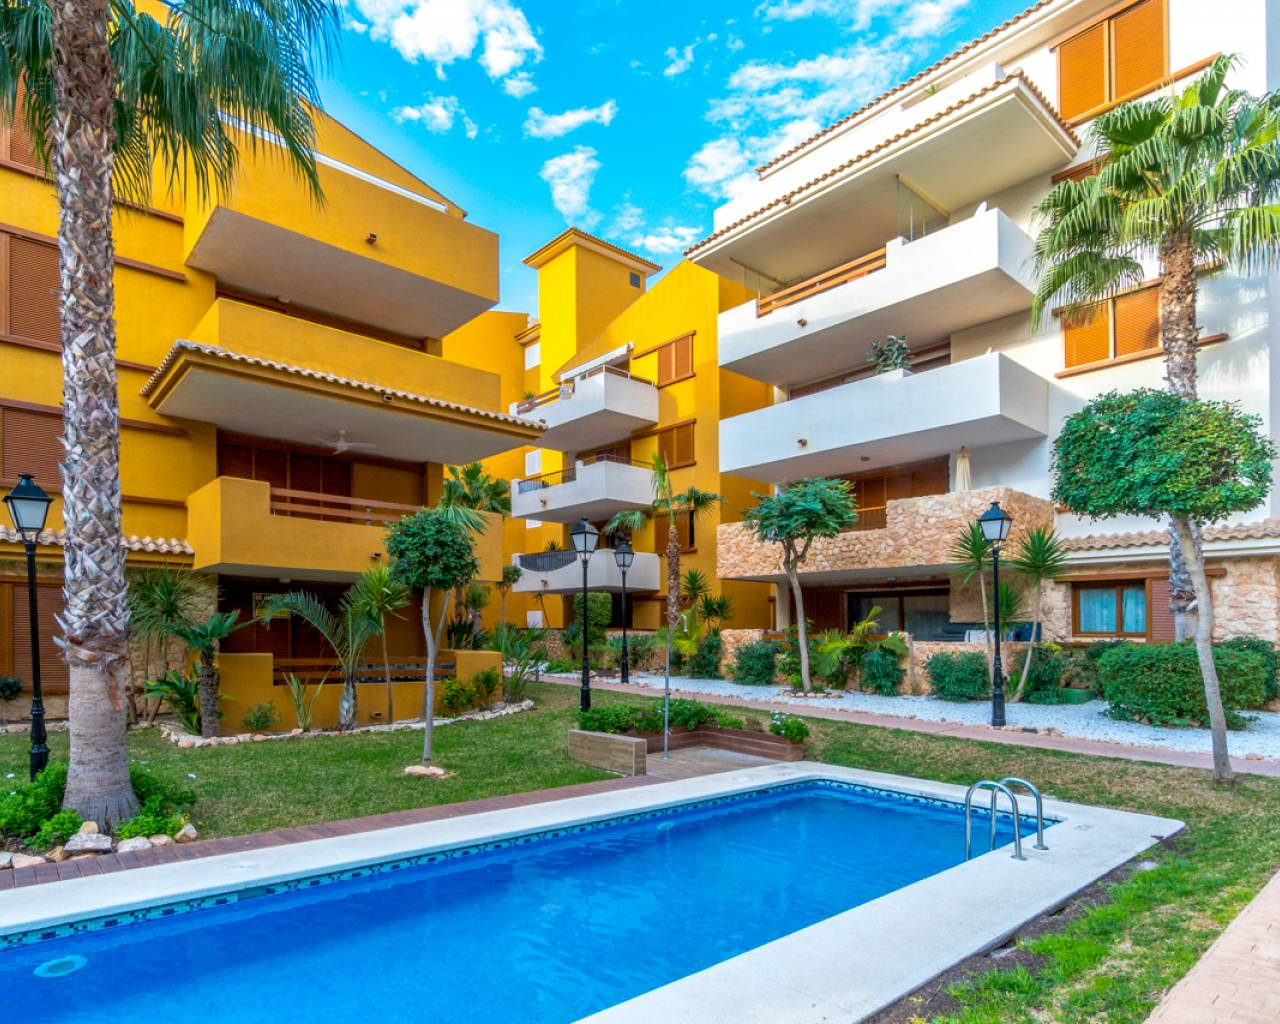 Appartement - Vente - Orihuela Costa - Orihuela Costa